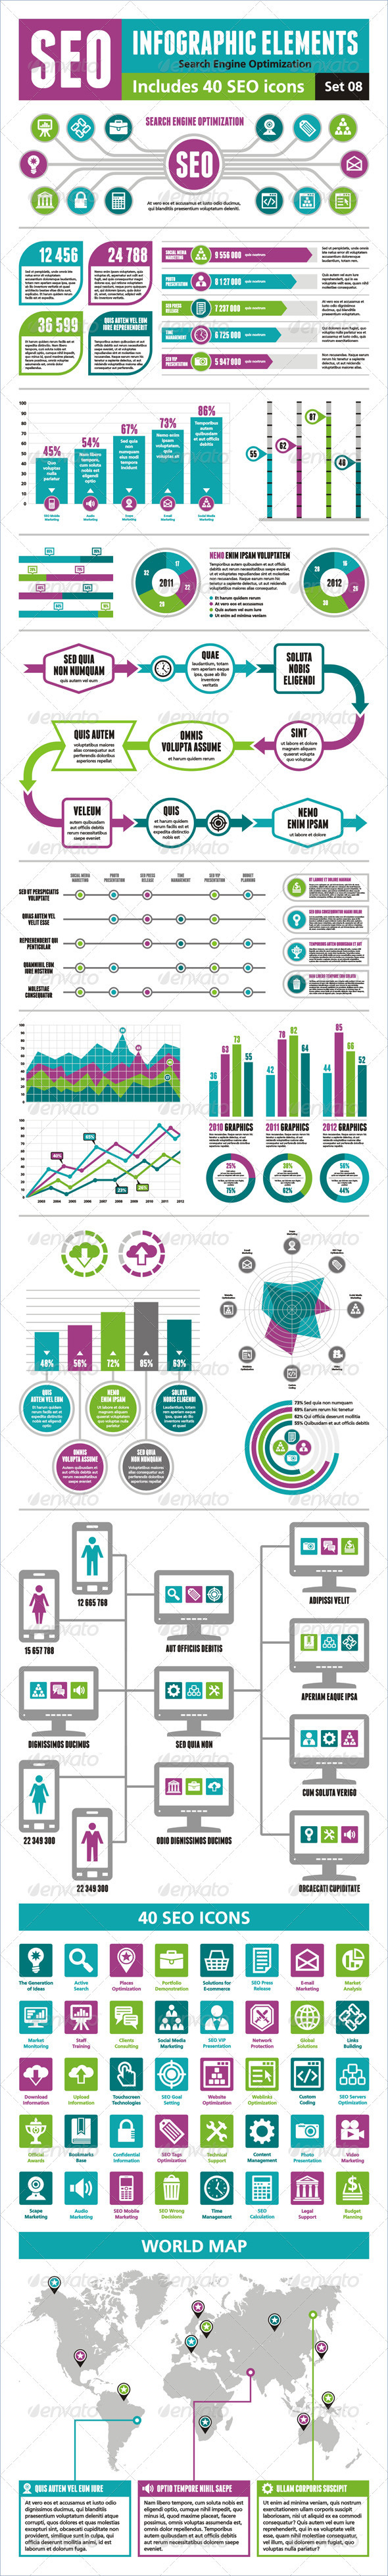 GraphicRiver SEO Infographic Elements Set 08 3823356